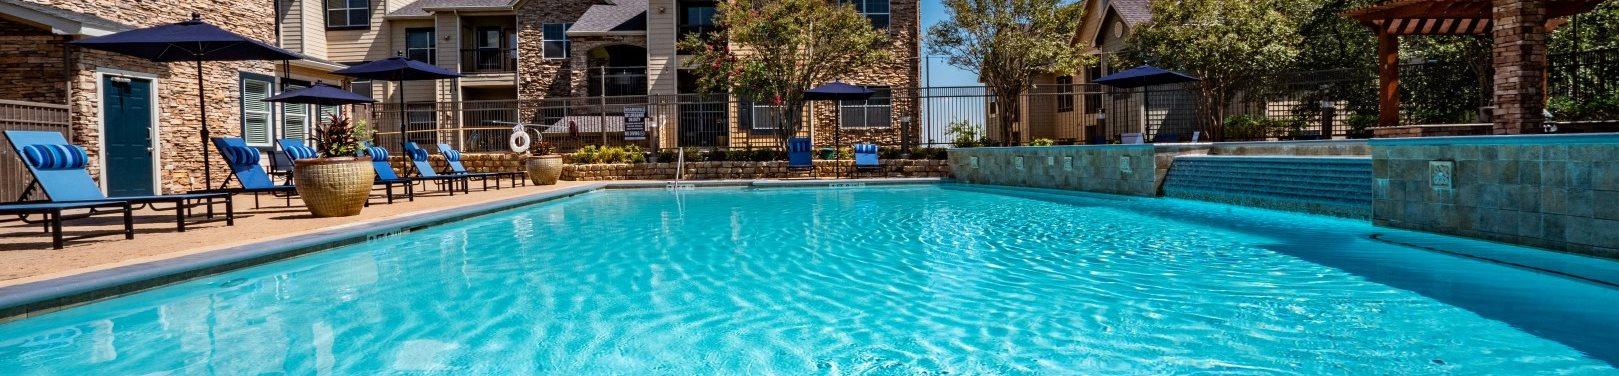 Relaxing Swimming Pool at The Reserve at Walnut Creek, Austin, TX